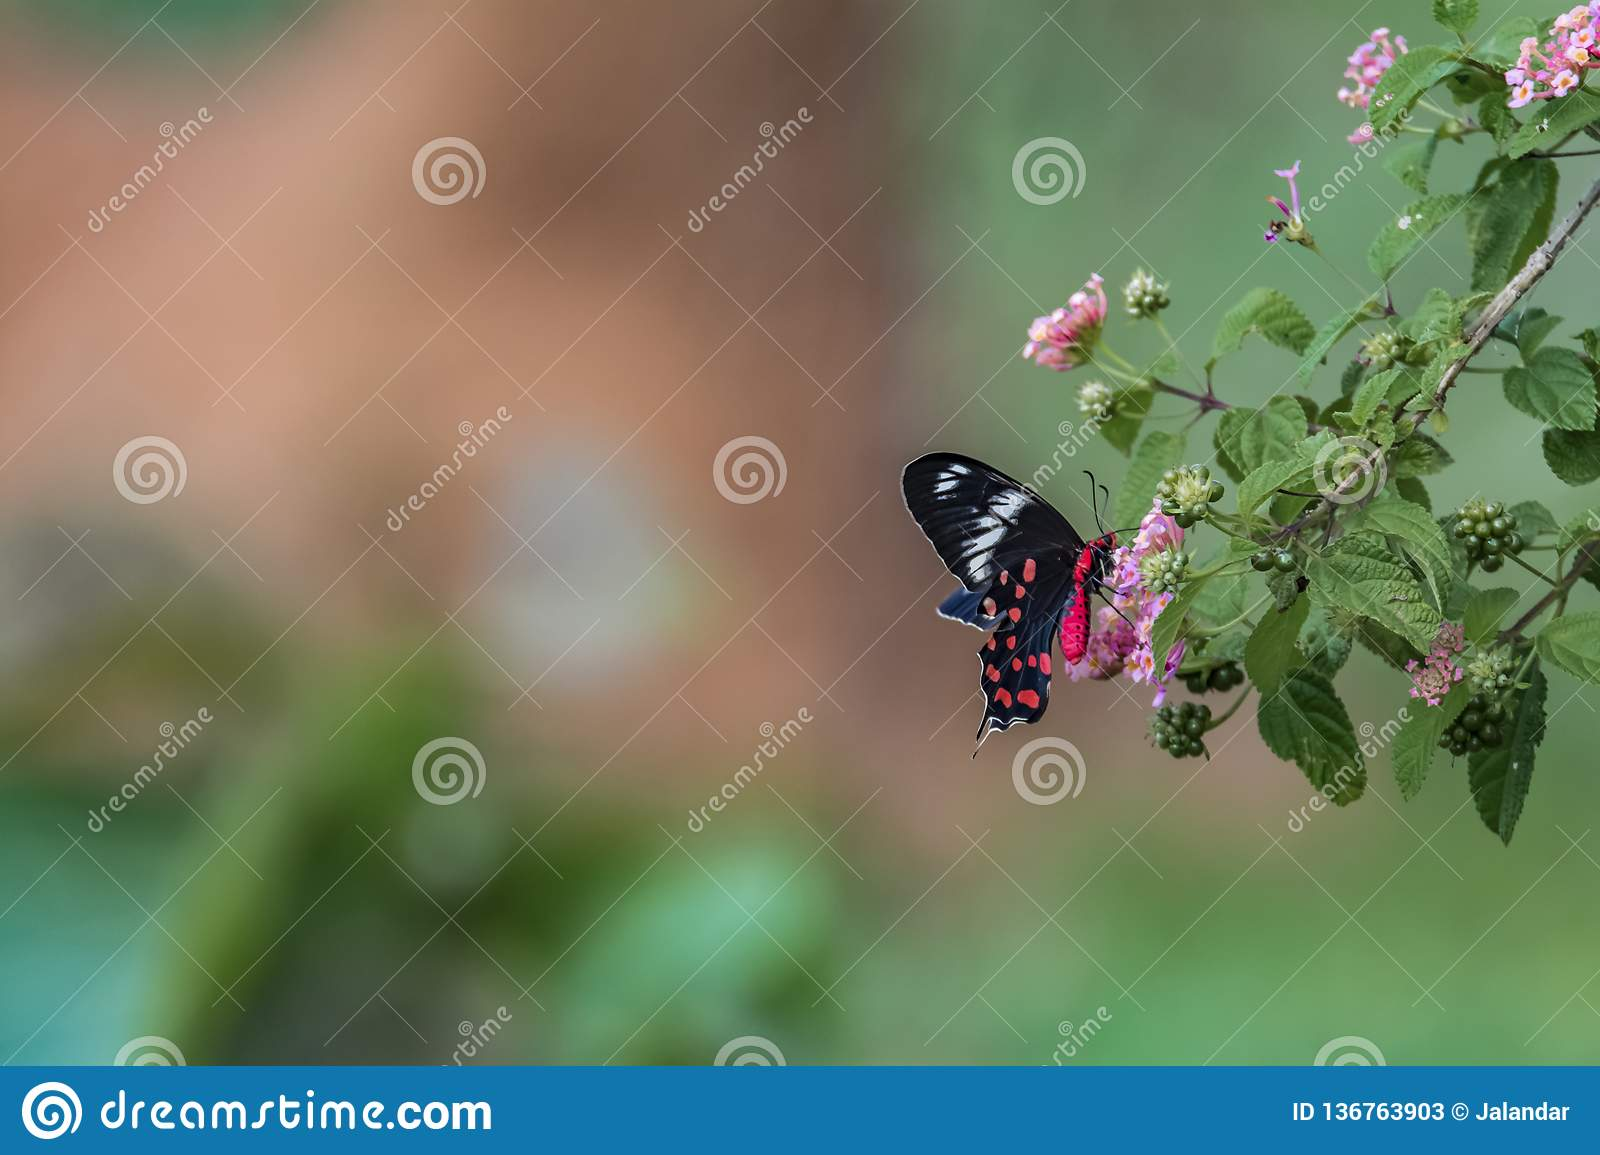 Pachliopta hector, the crimson rose butterfly